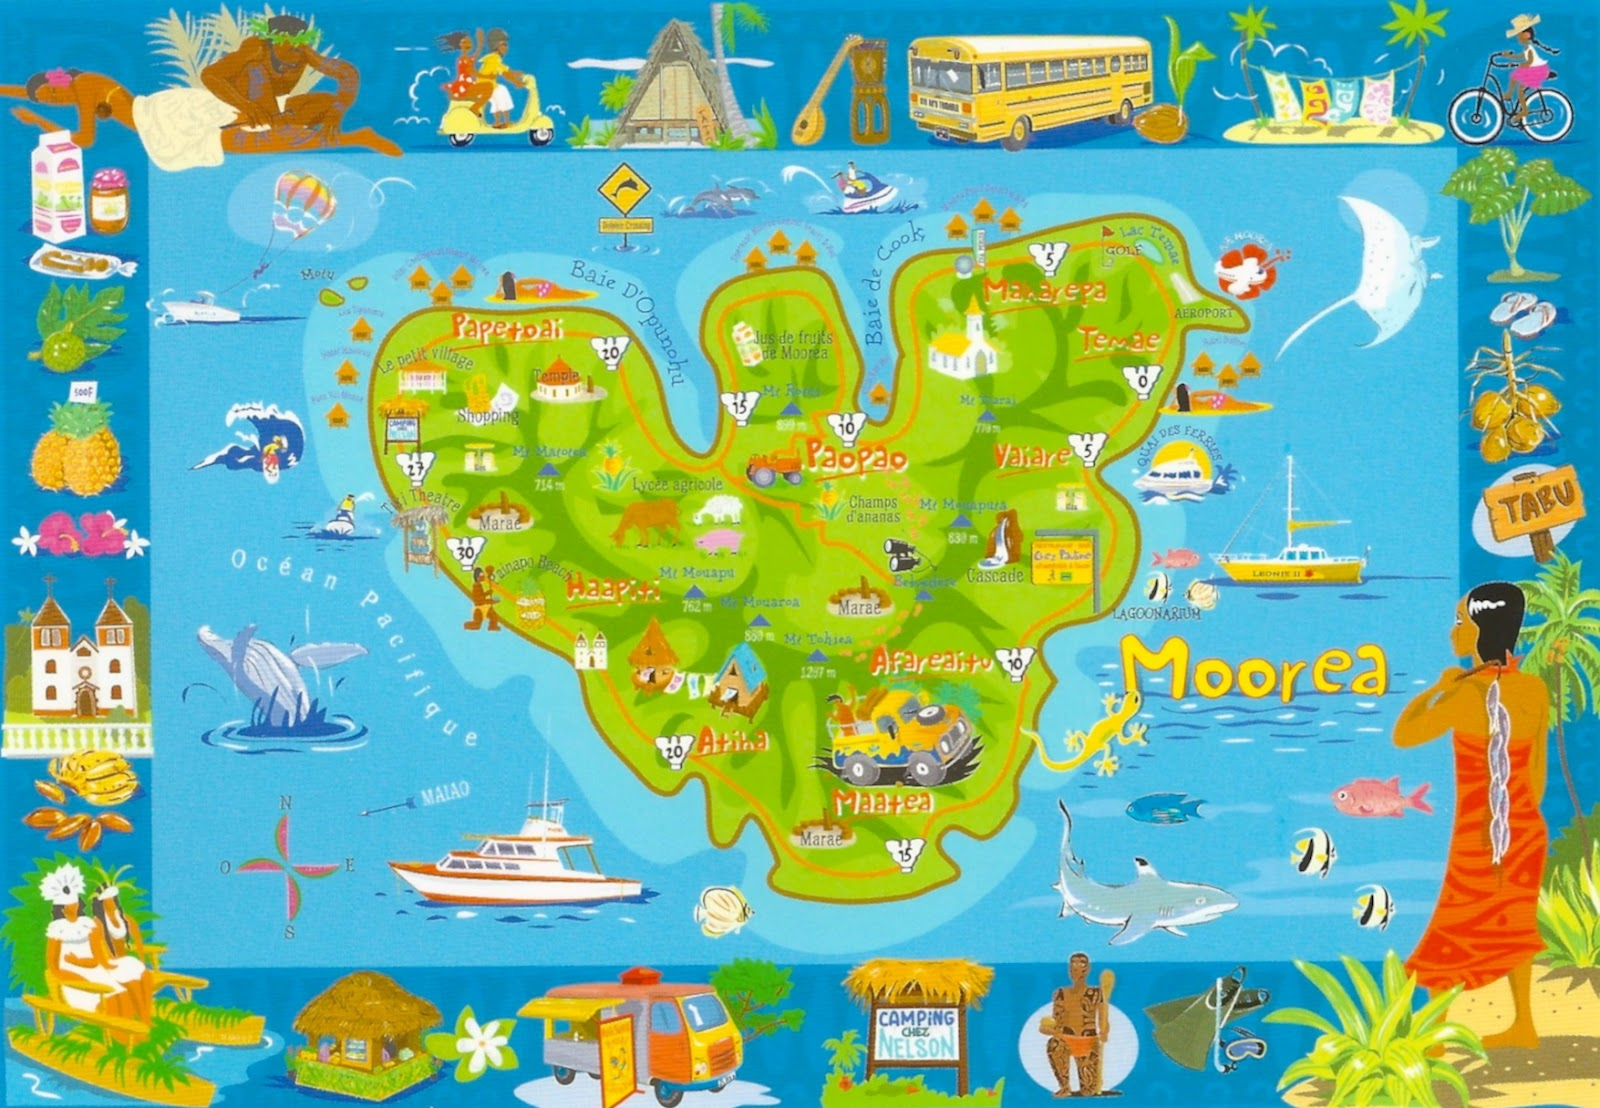 My Favorite Views French Polynesia Moorea Map Of The Island